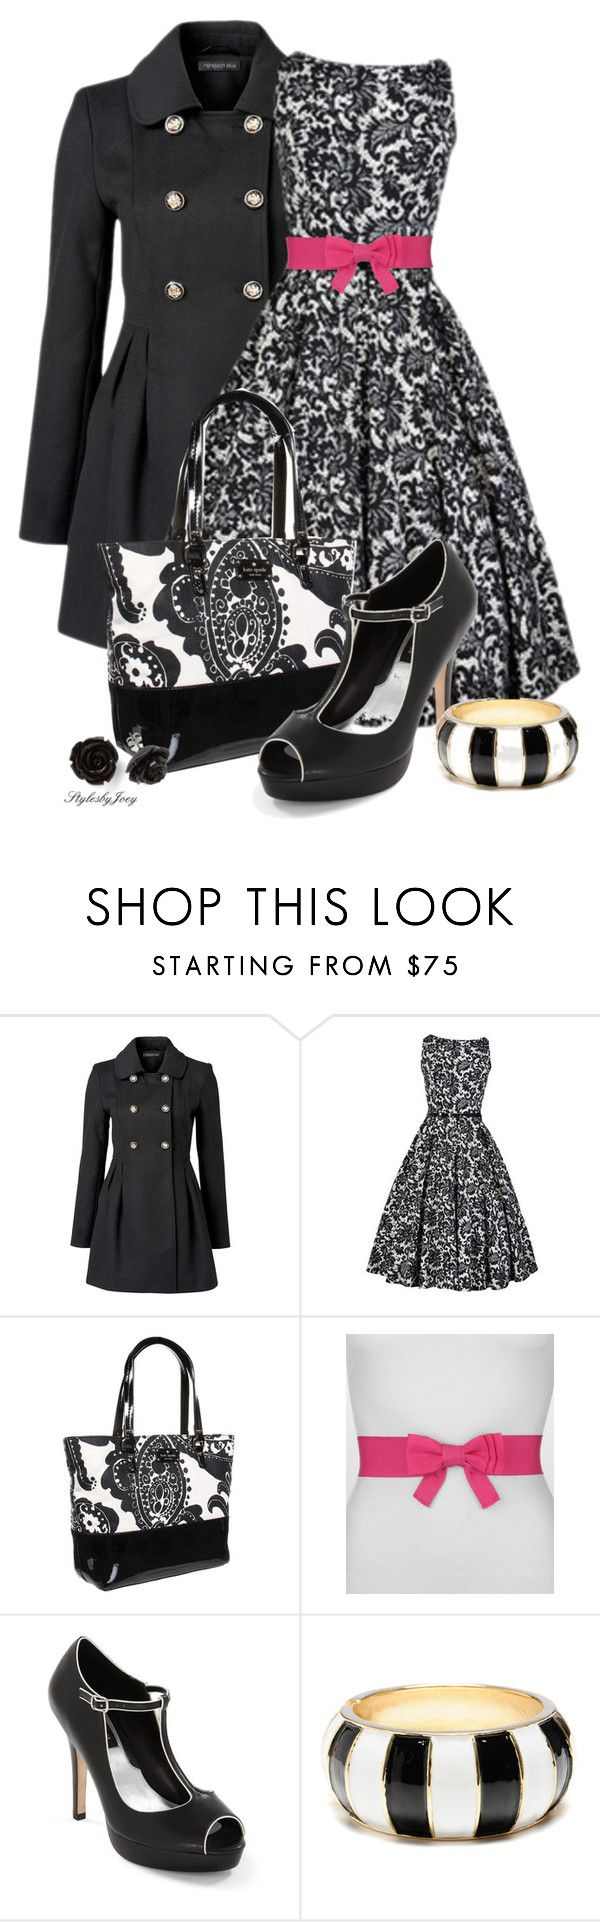 """Pop of Pink"" by stylesbyjoey ❤ liked on Polyvore featuring Forever New, Kate Spade, Lanvin, White House Black Market, Amrita Singh, floral dresses, black and white, heels, paisley bags and coats"